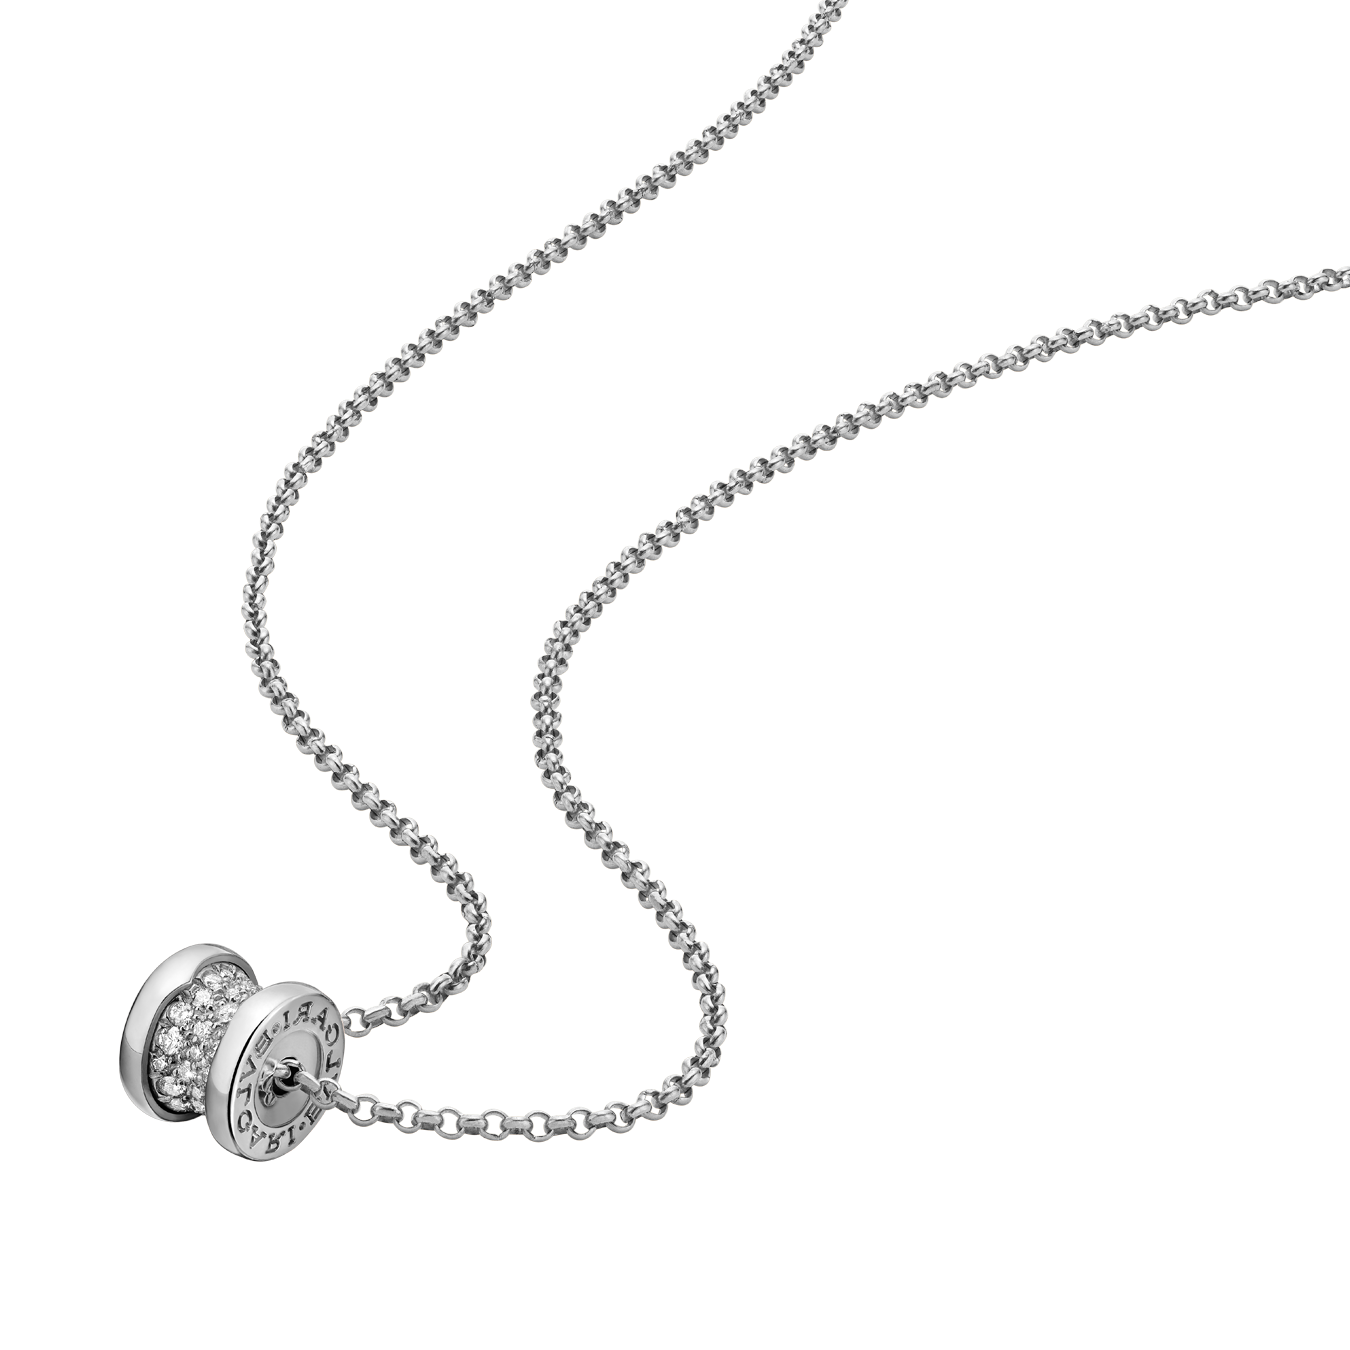 Bvlgari B.ZERO1 replique Collier or blanc Pavé de diamants pendentif